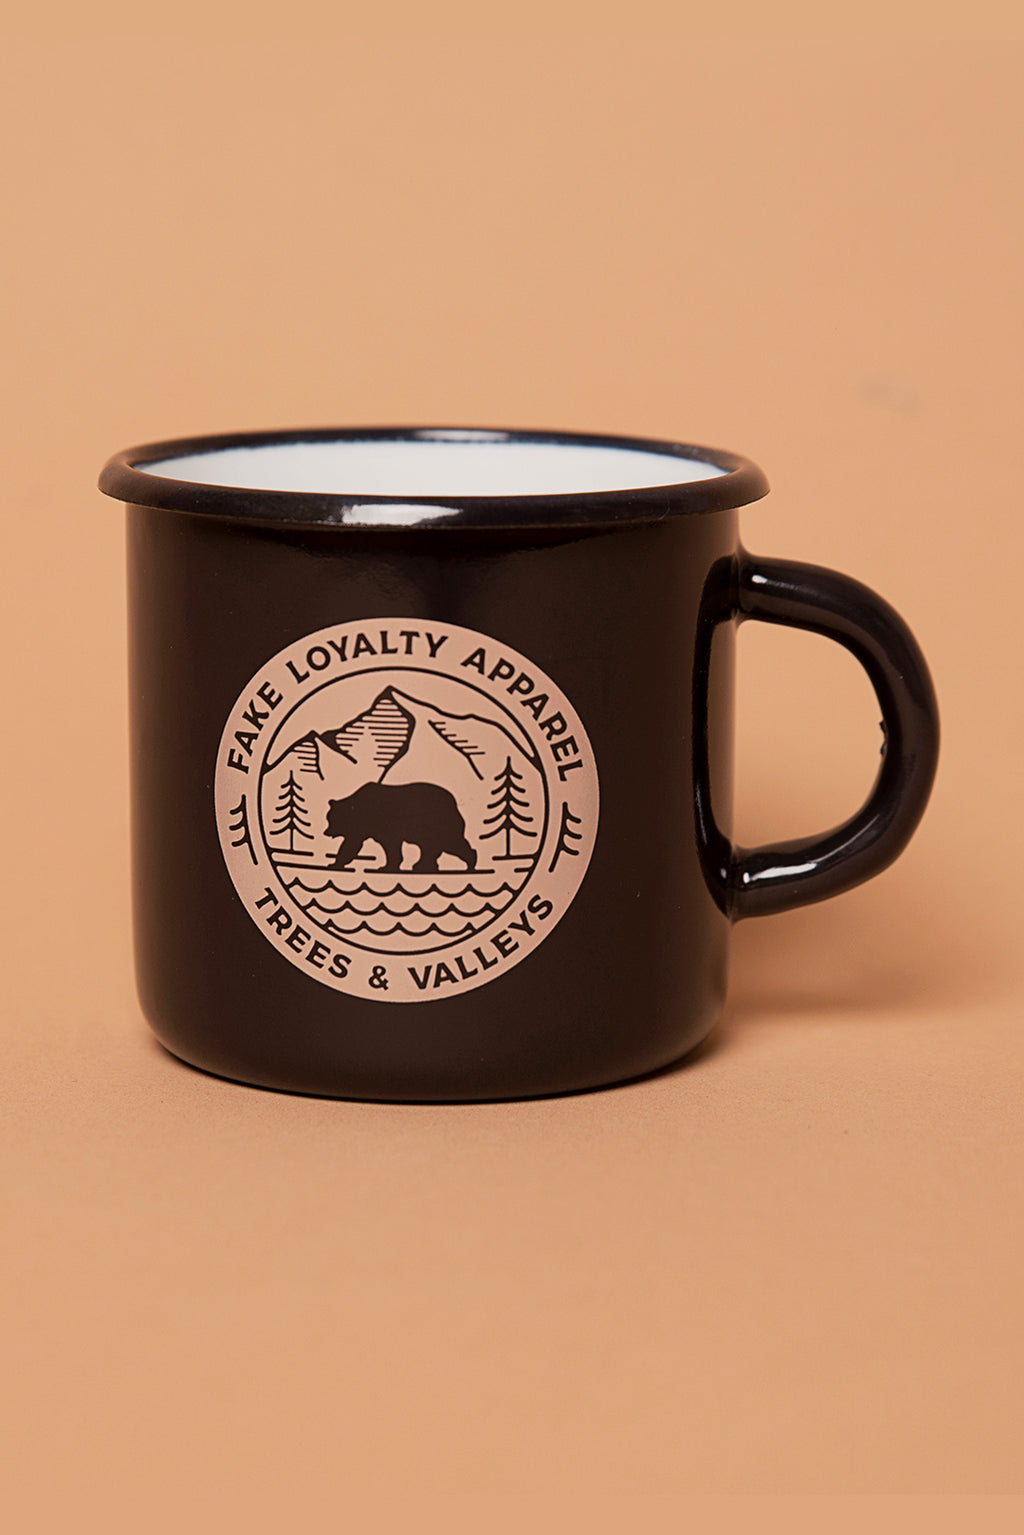 VALLEYS Enamel Mug